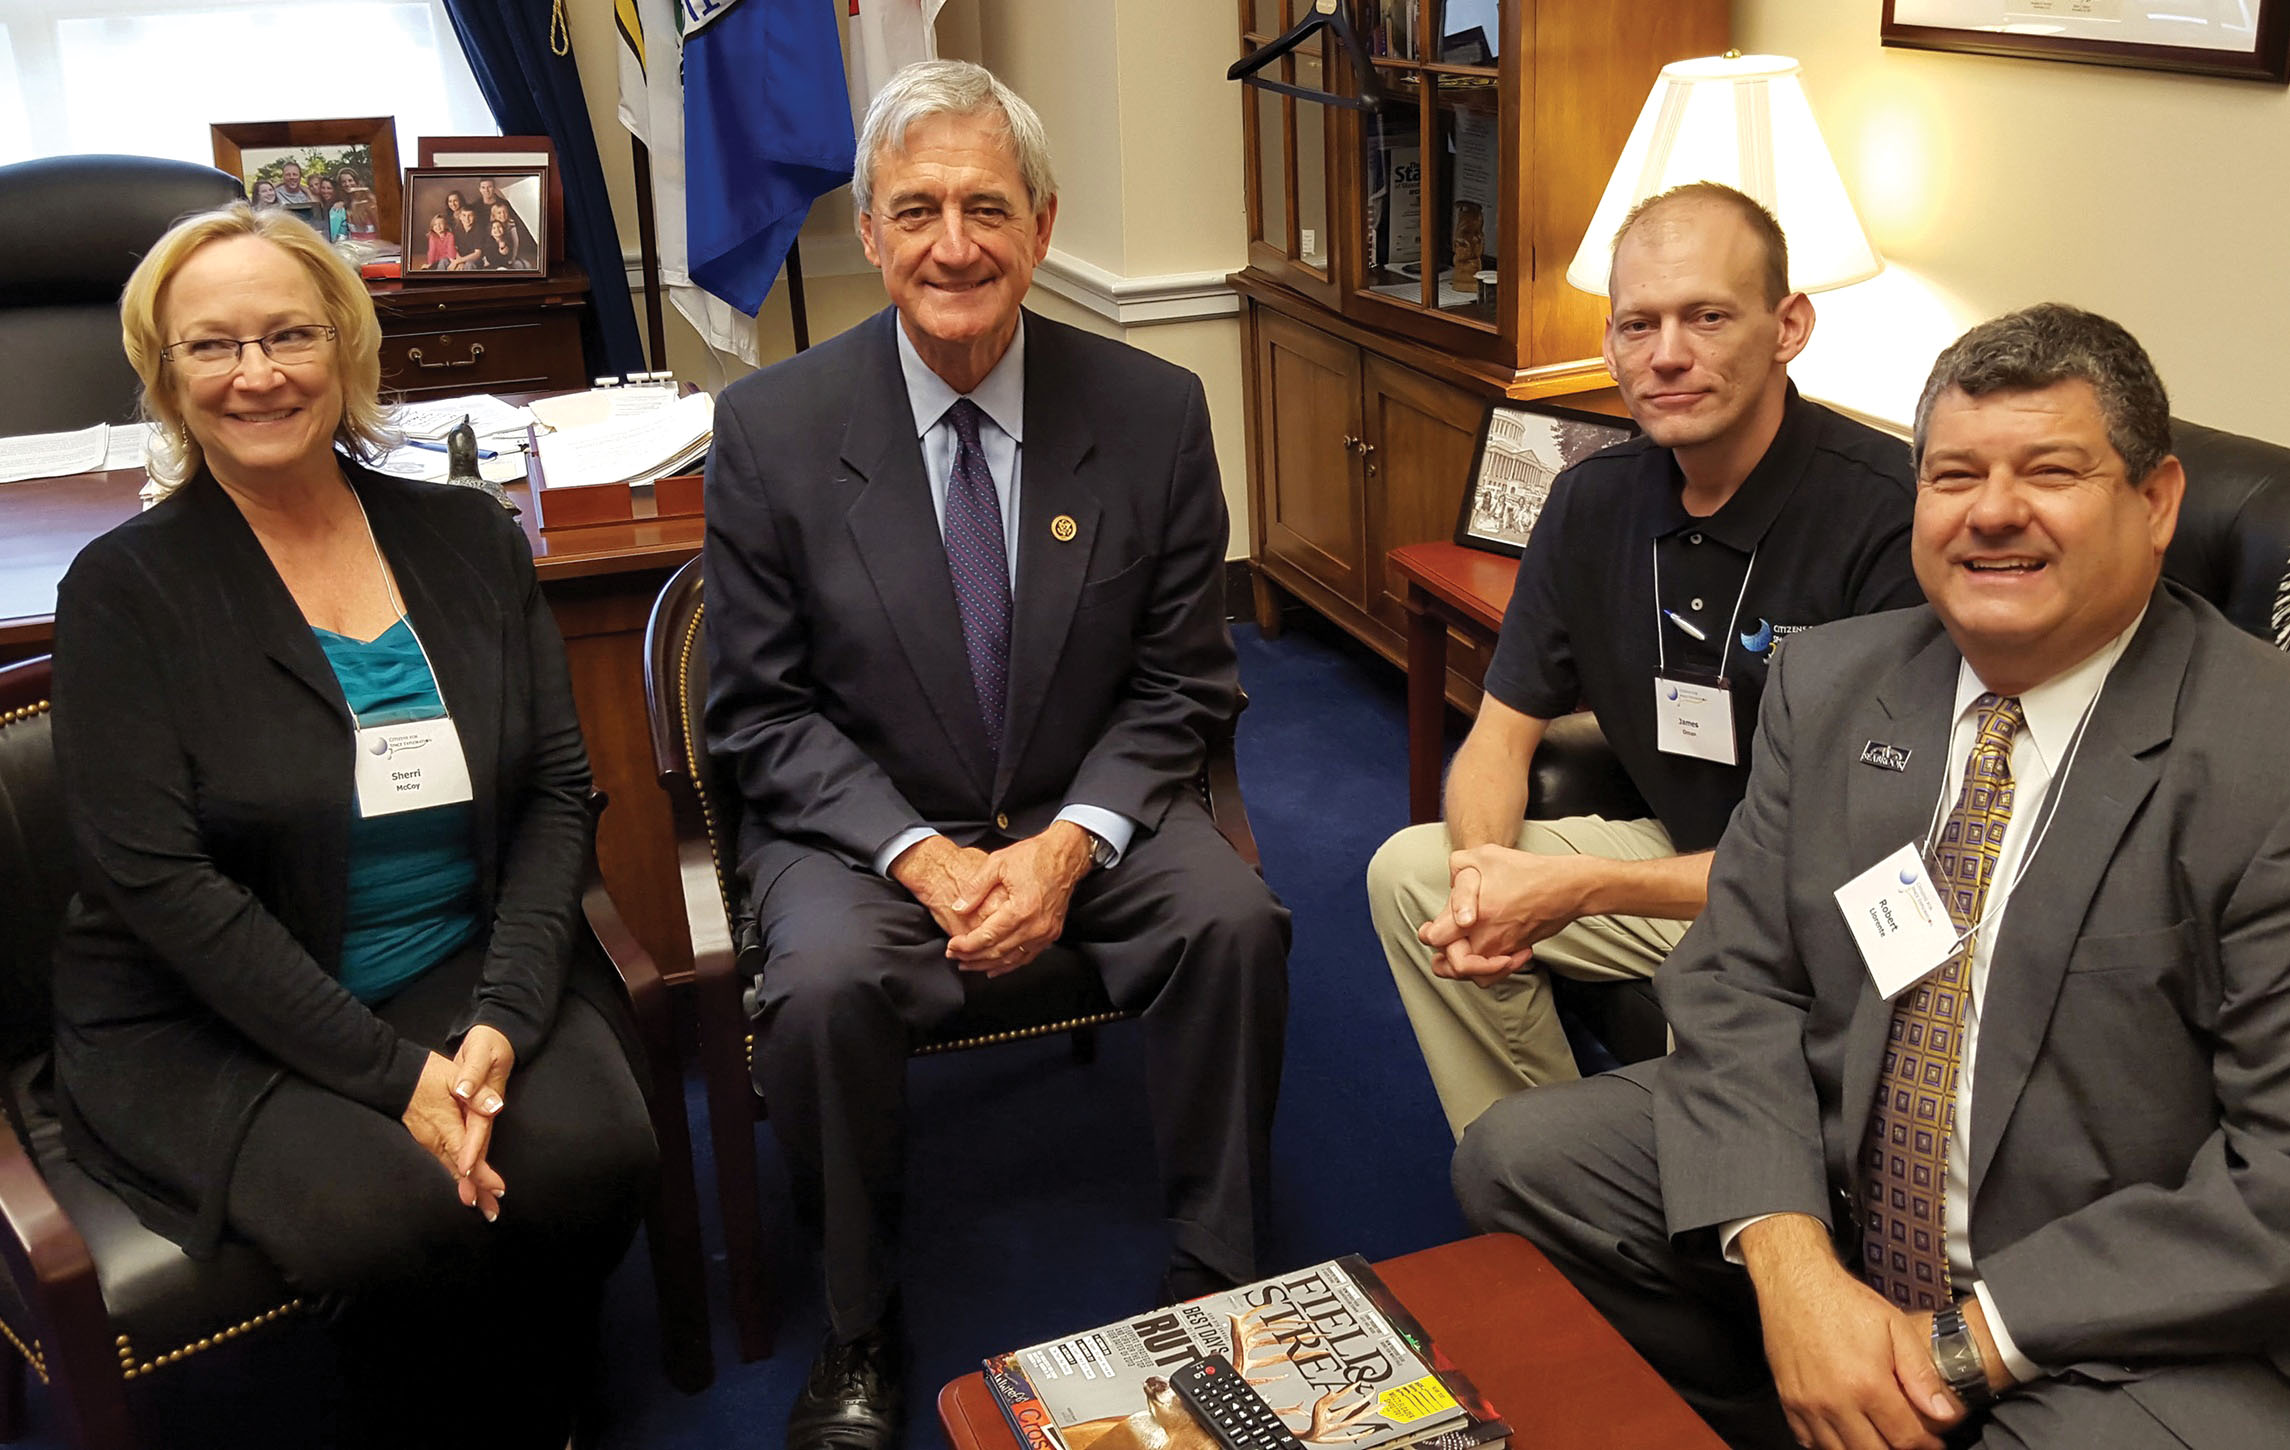 Over the course of two days, 95 Citizens for Space Exploration travelers made a record 376 congressional office visits. Shown are Sherri McCoy, Minnesota Rep. Rick Nolan, James Oman, and Seabrook Councilman Robert Llorente.